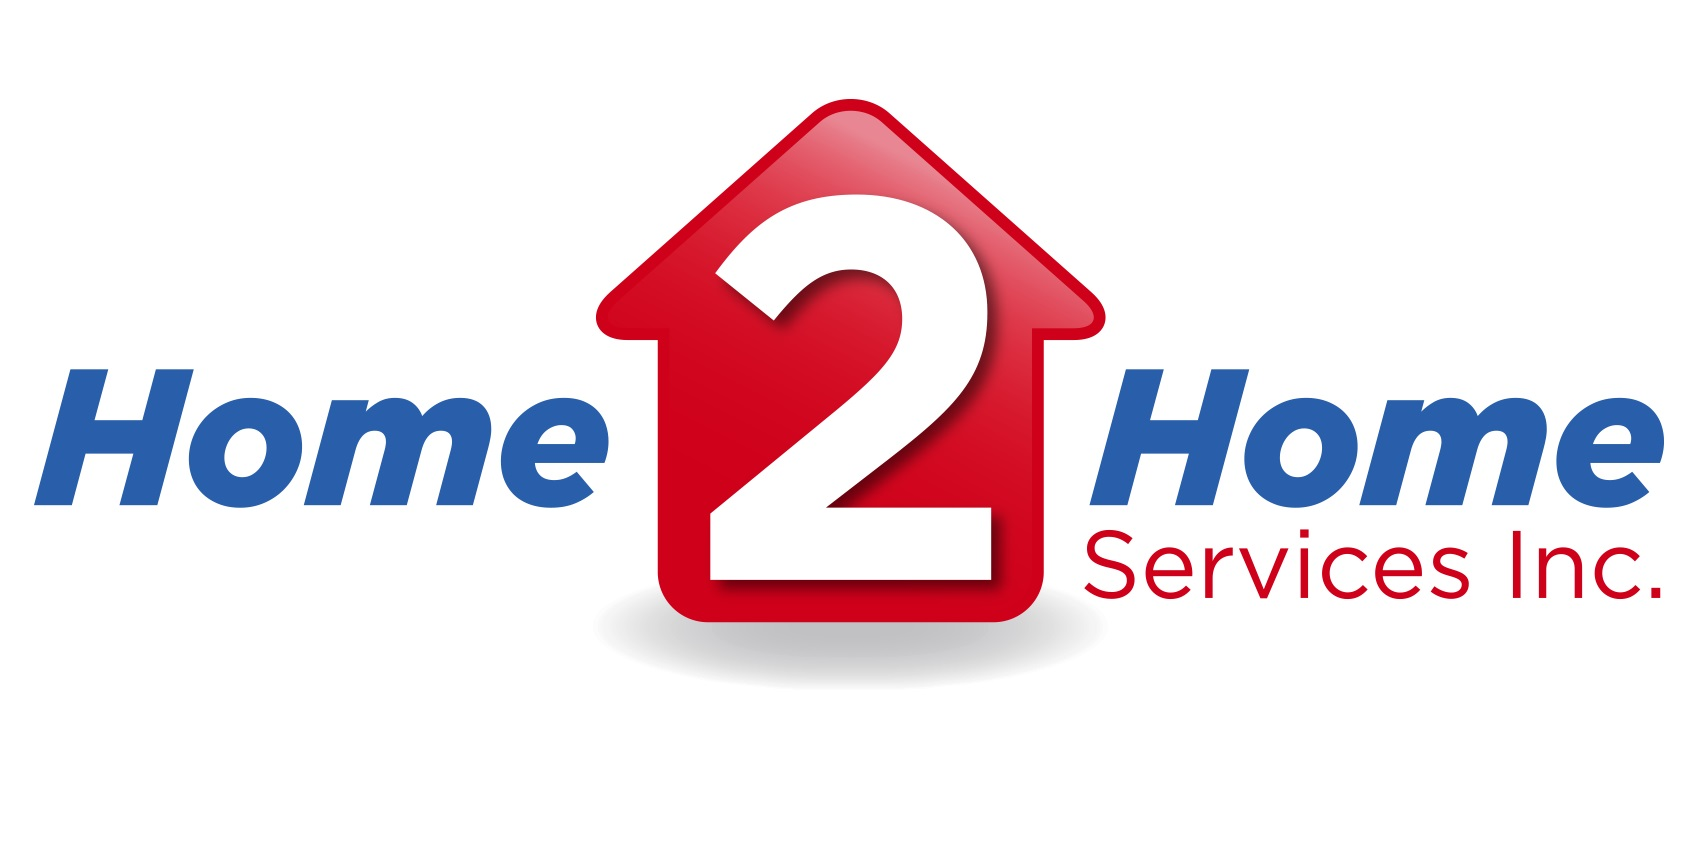 Home 2 Home Services, Inc